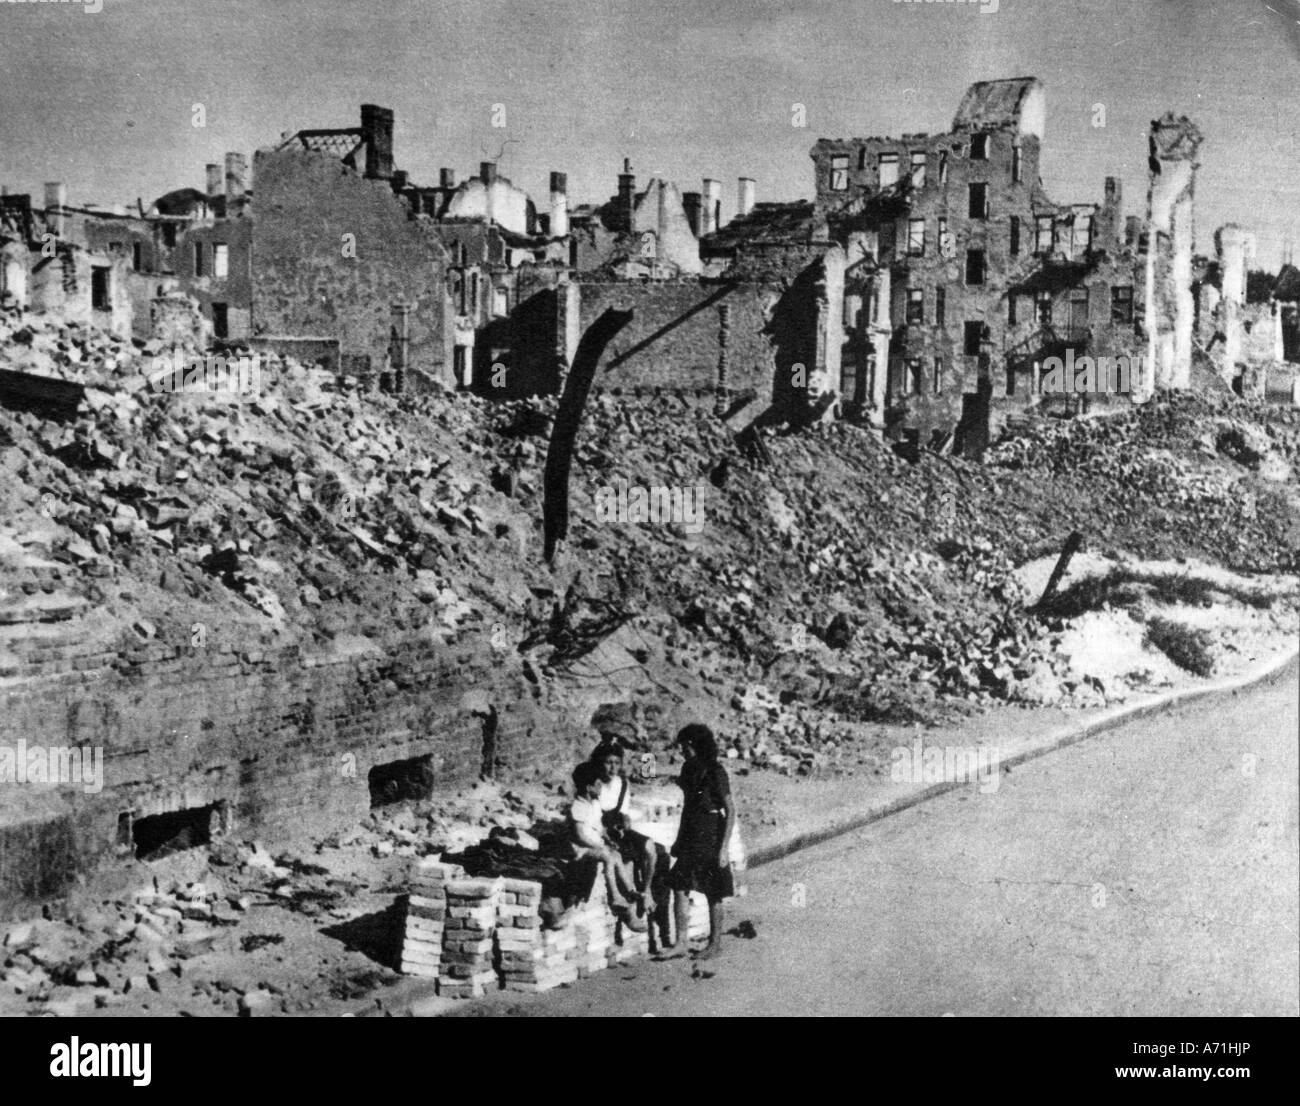 events, post war era, destroyed cities, Munich, Hess Street, 1945, Additional-Rights-Clearances-NA - Stock Image